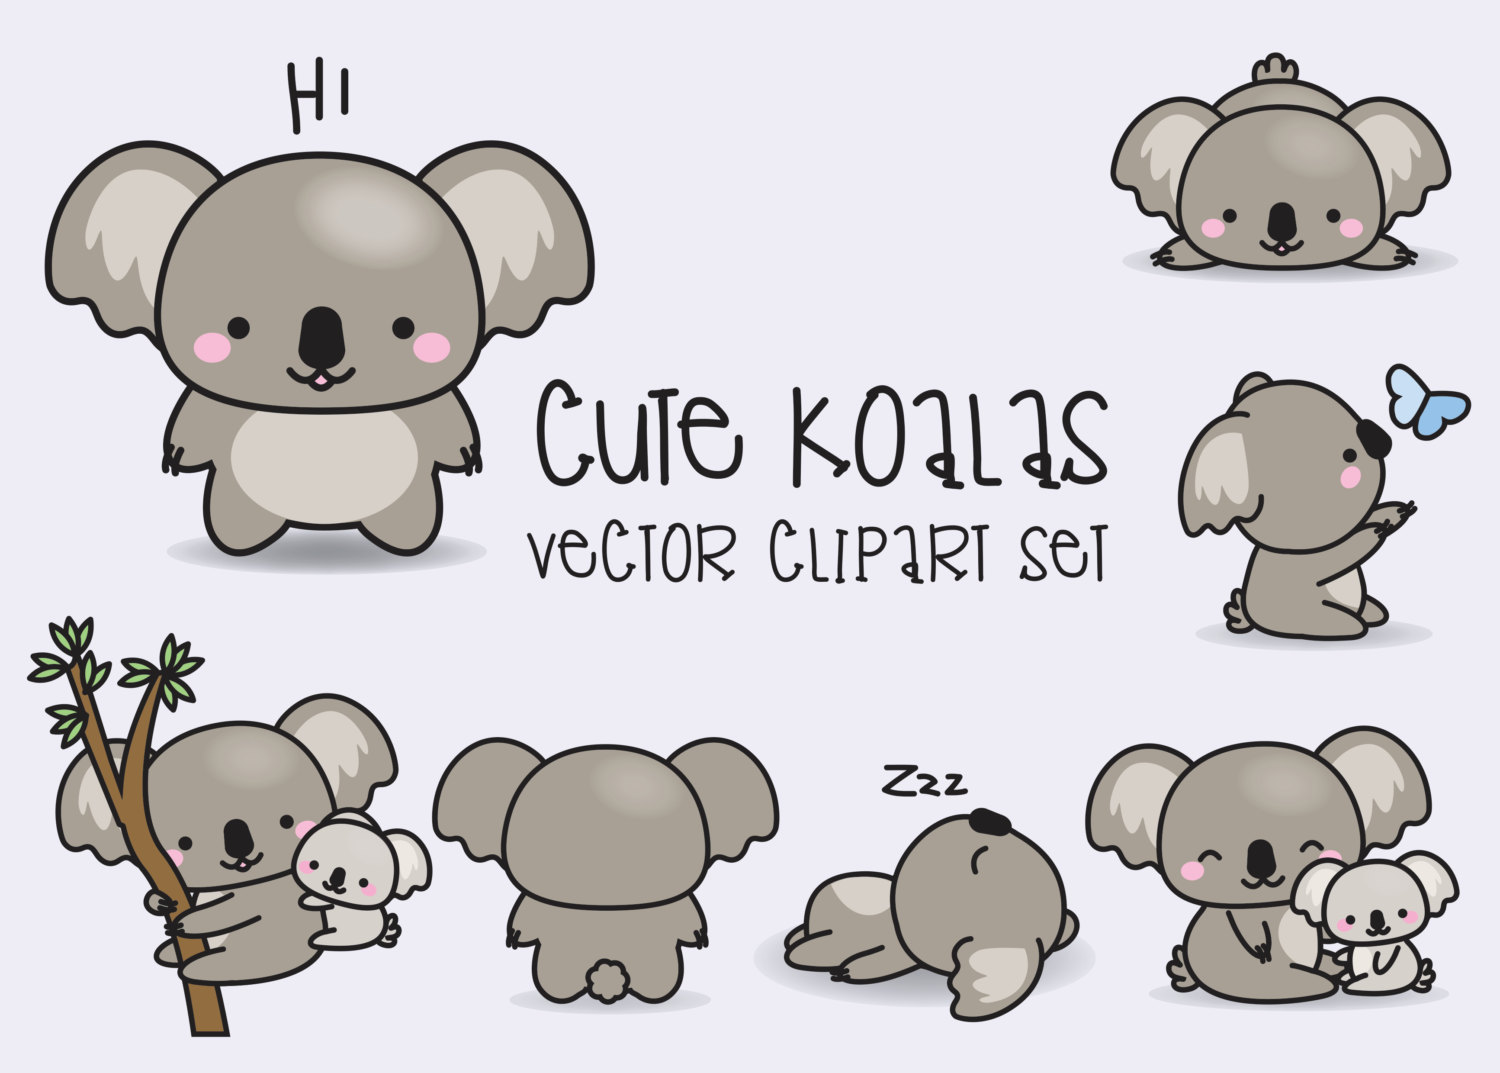 Cute Koala Drawing at GetDrawings | Free download